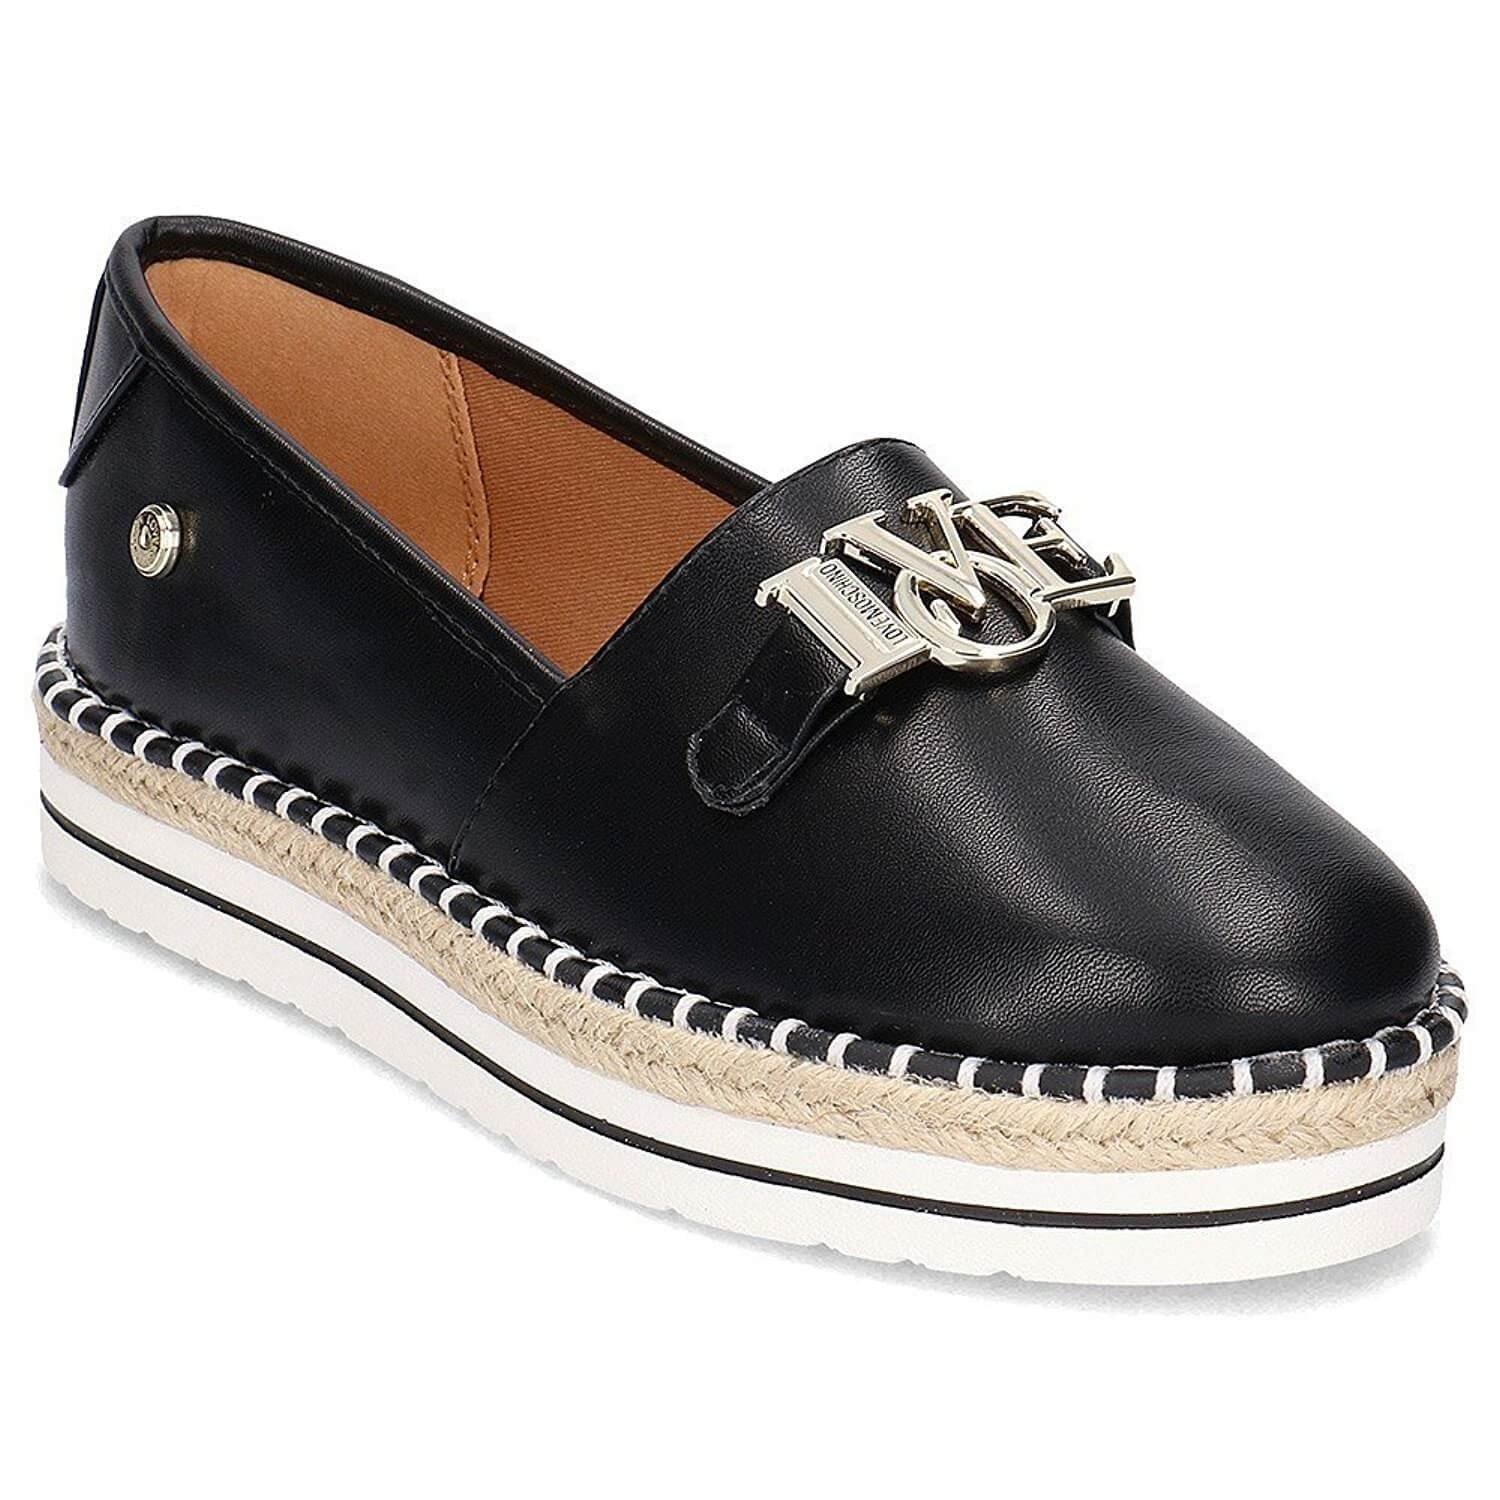 Love Moschino Women's Espadrilles In Black Leather With Steel Logo. Size 40